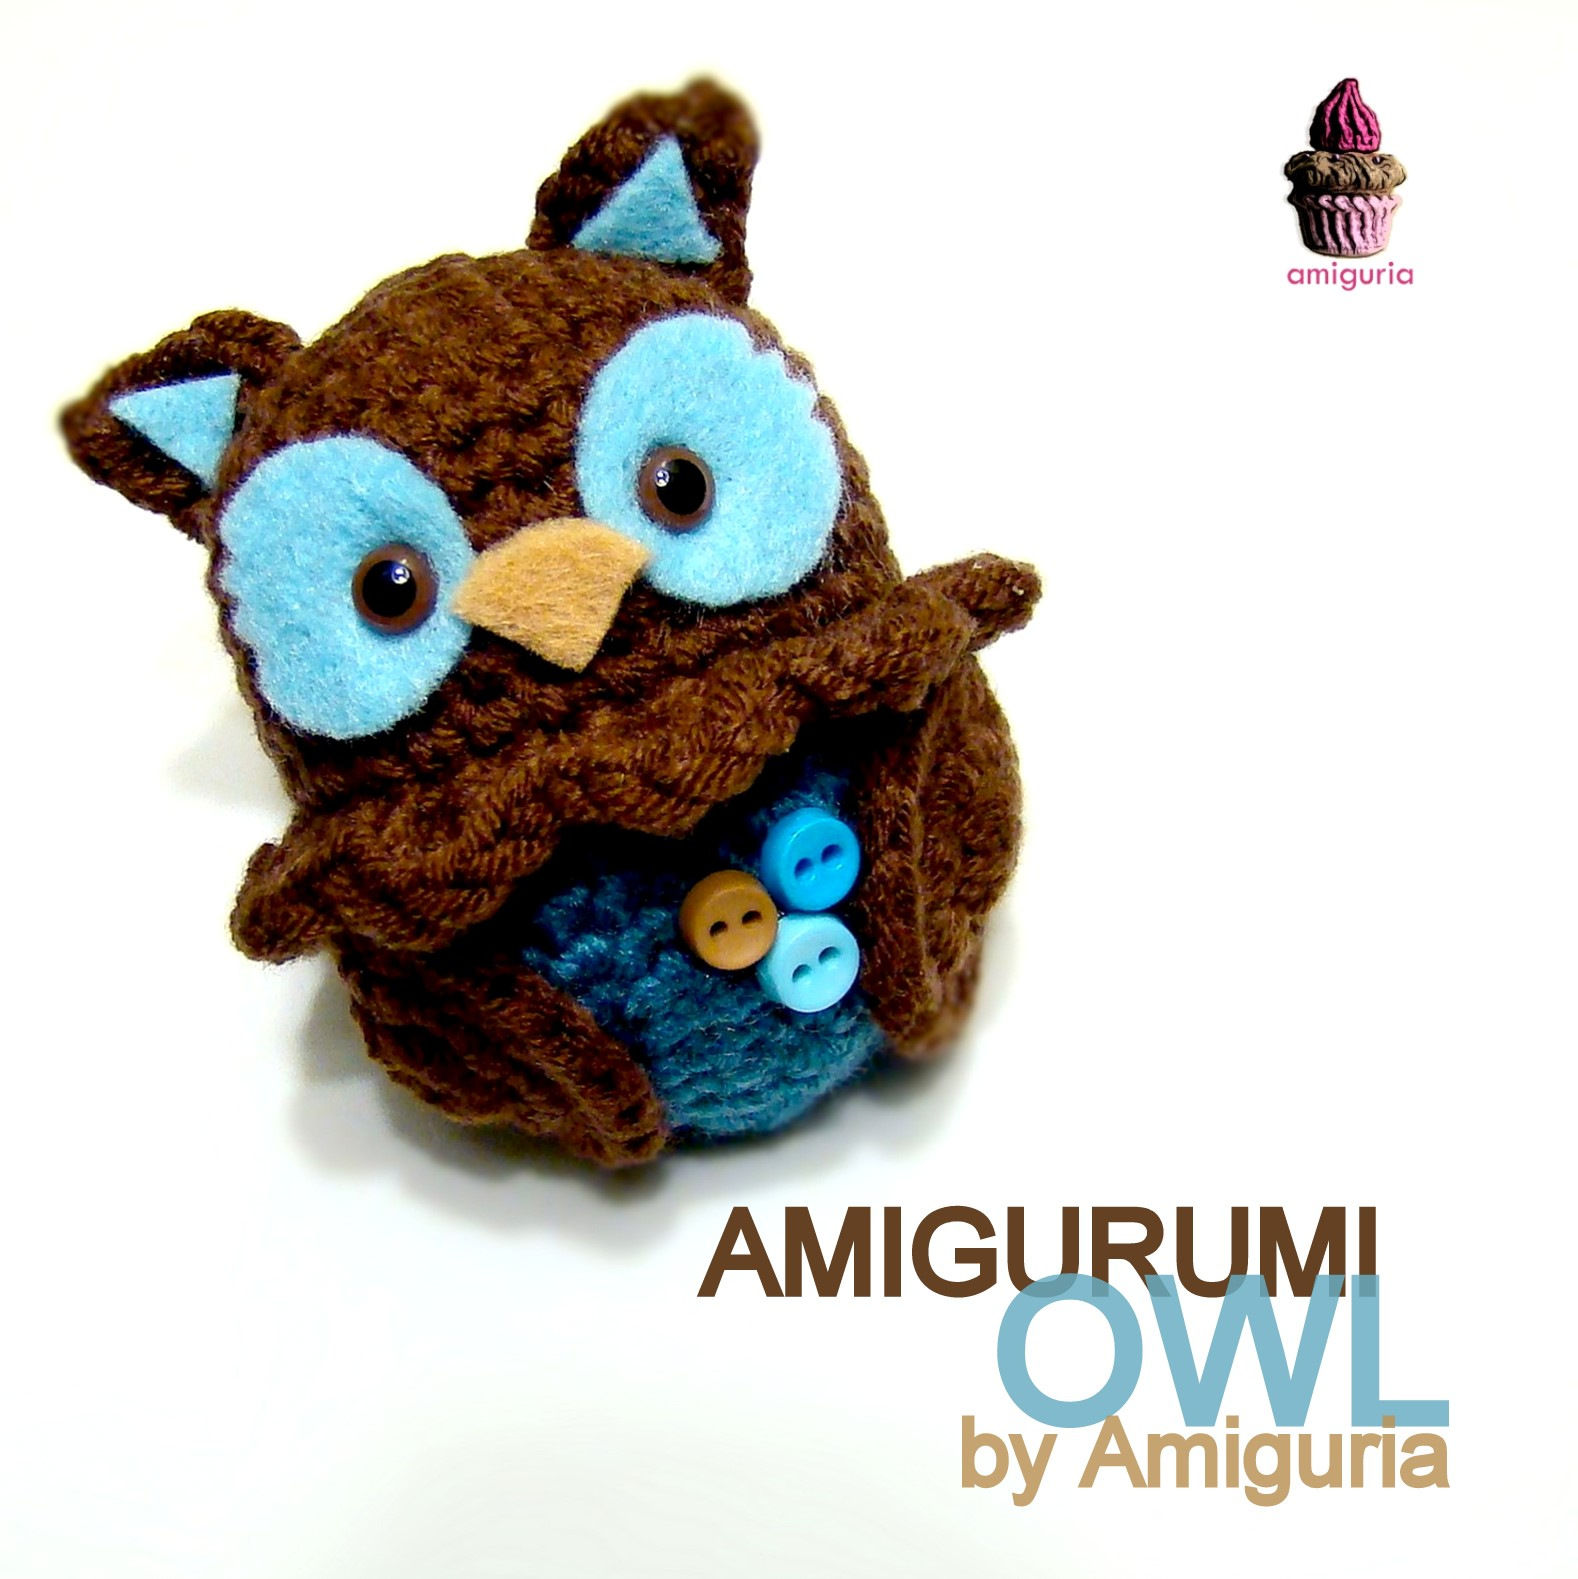 Amigurumi Patterns Owl : amiguria amigurumi: Amigurumi Owl by Amiguria